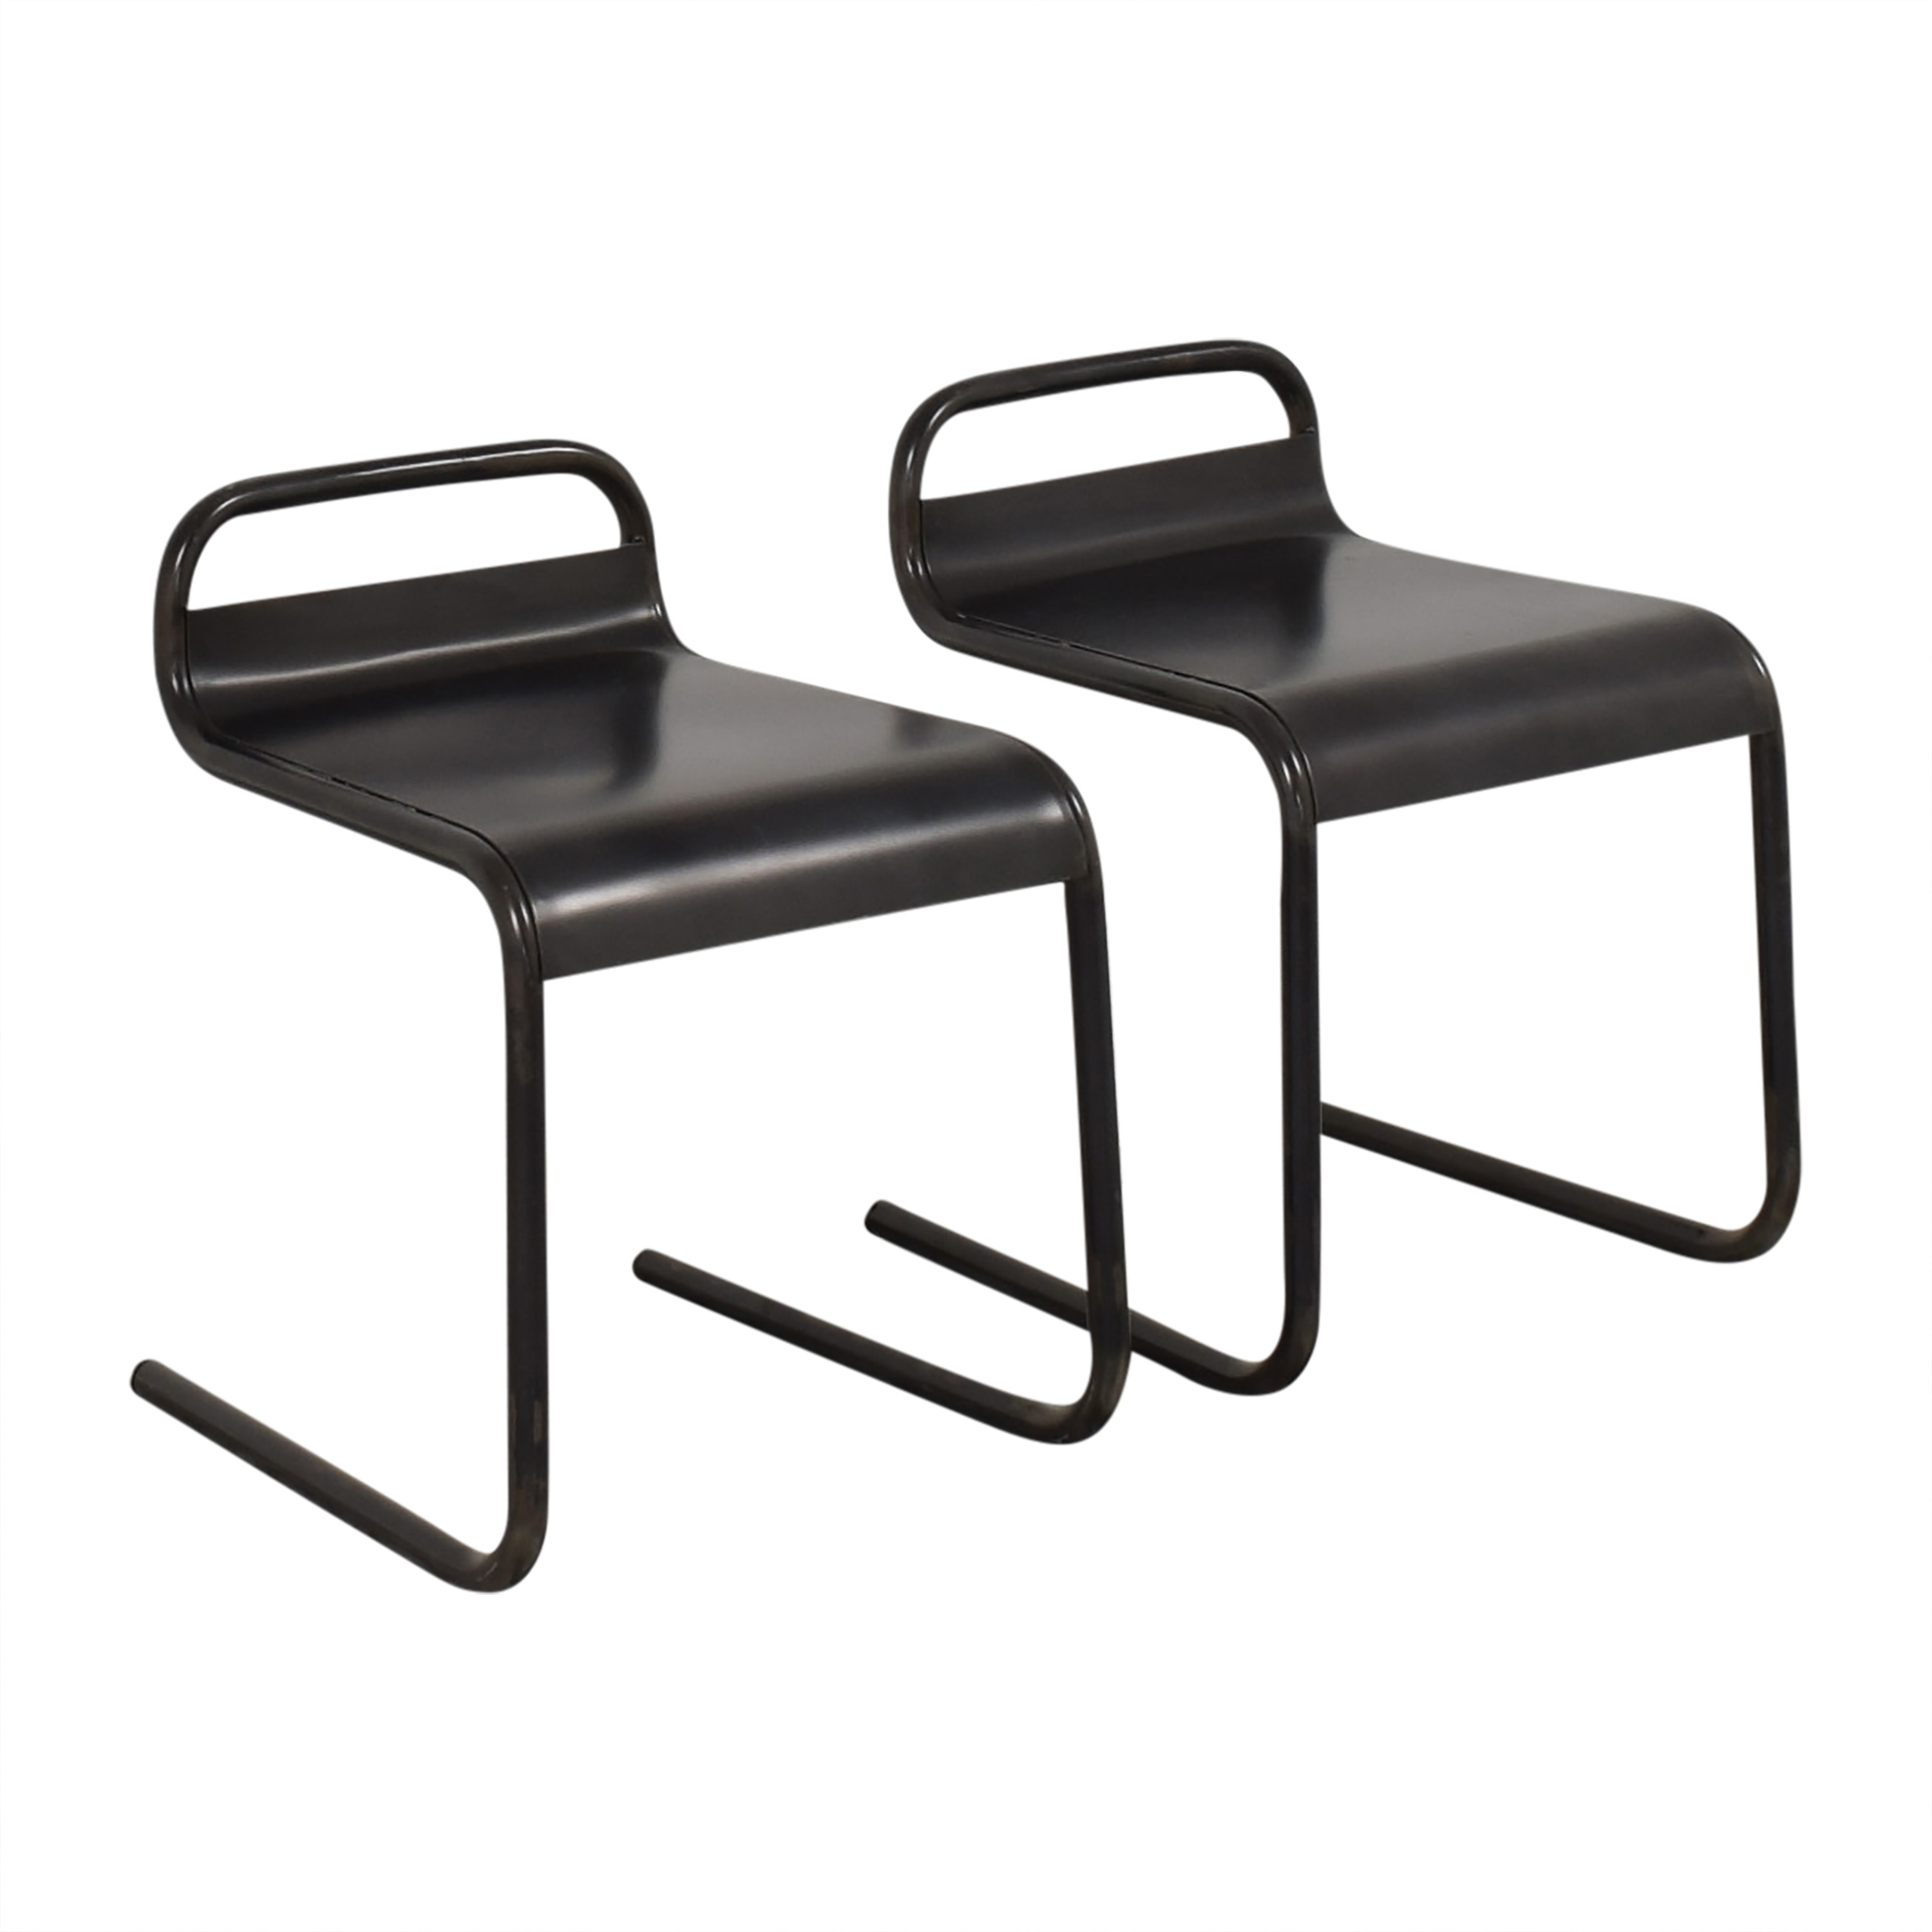 buy From The Source Minimal Dining Chairs From the Source